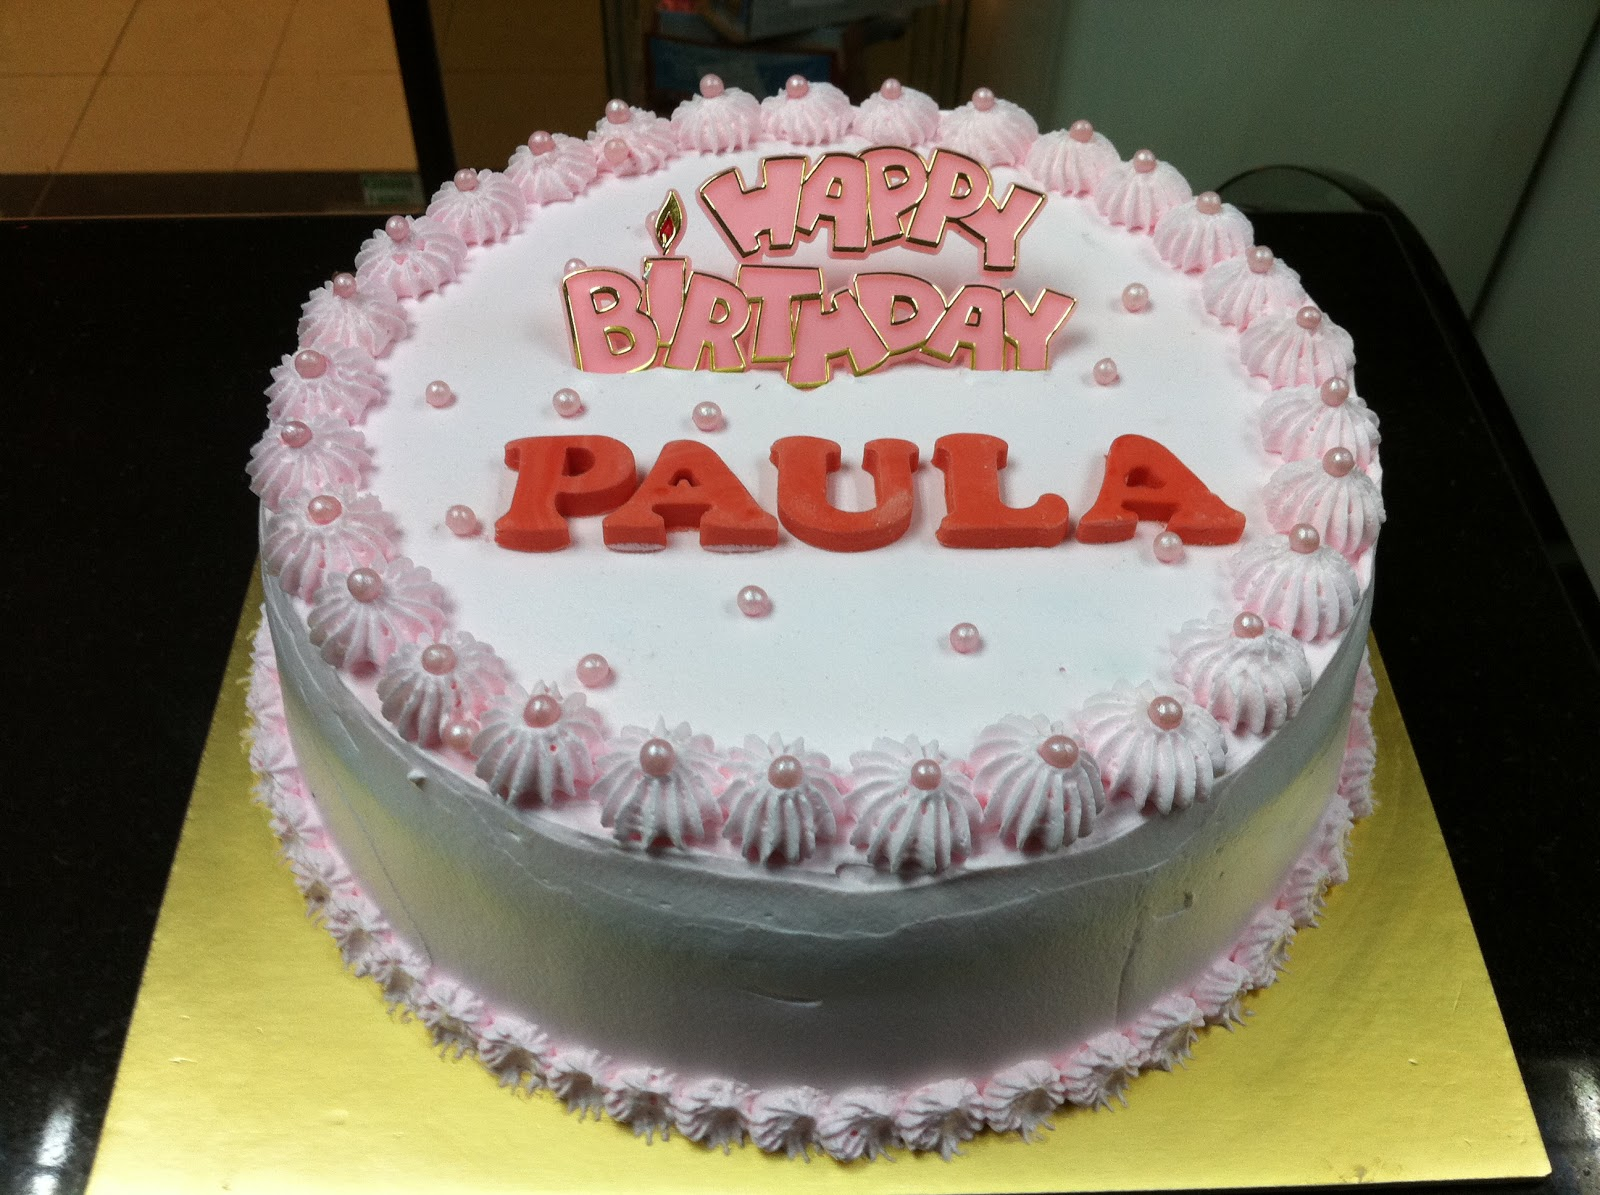 Haven Bakery Paula Birthday Cake